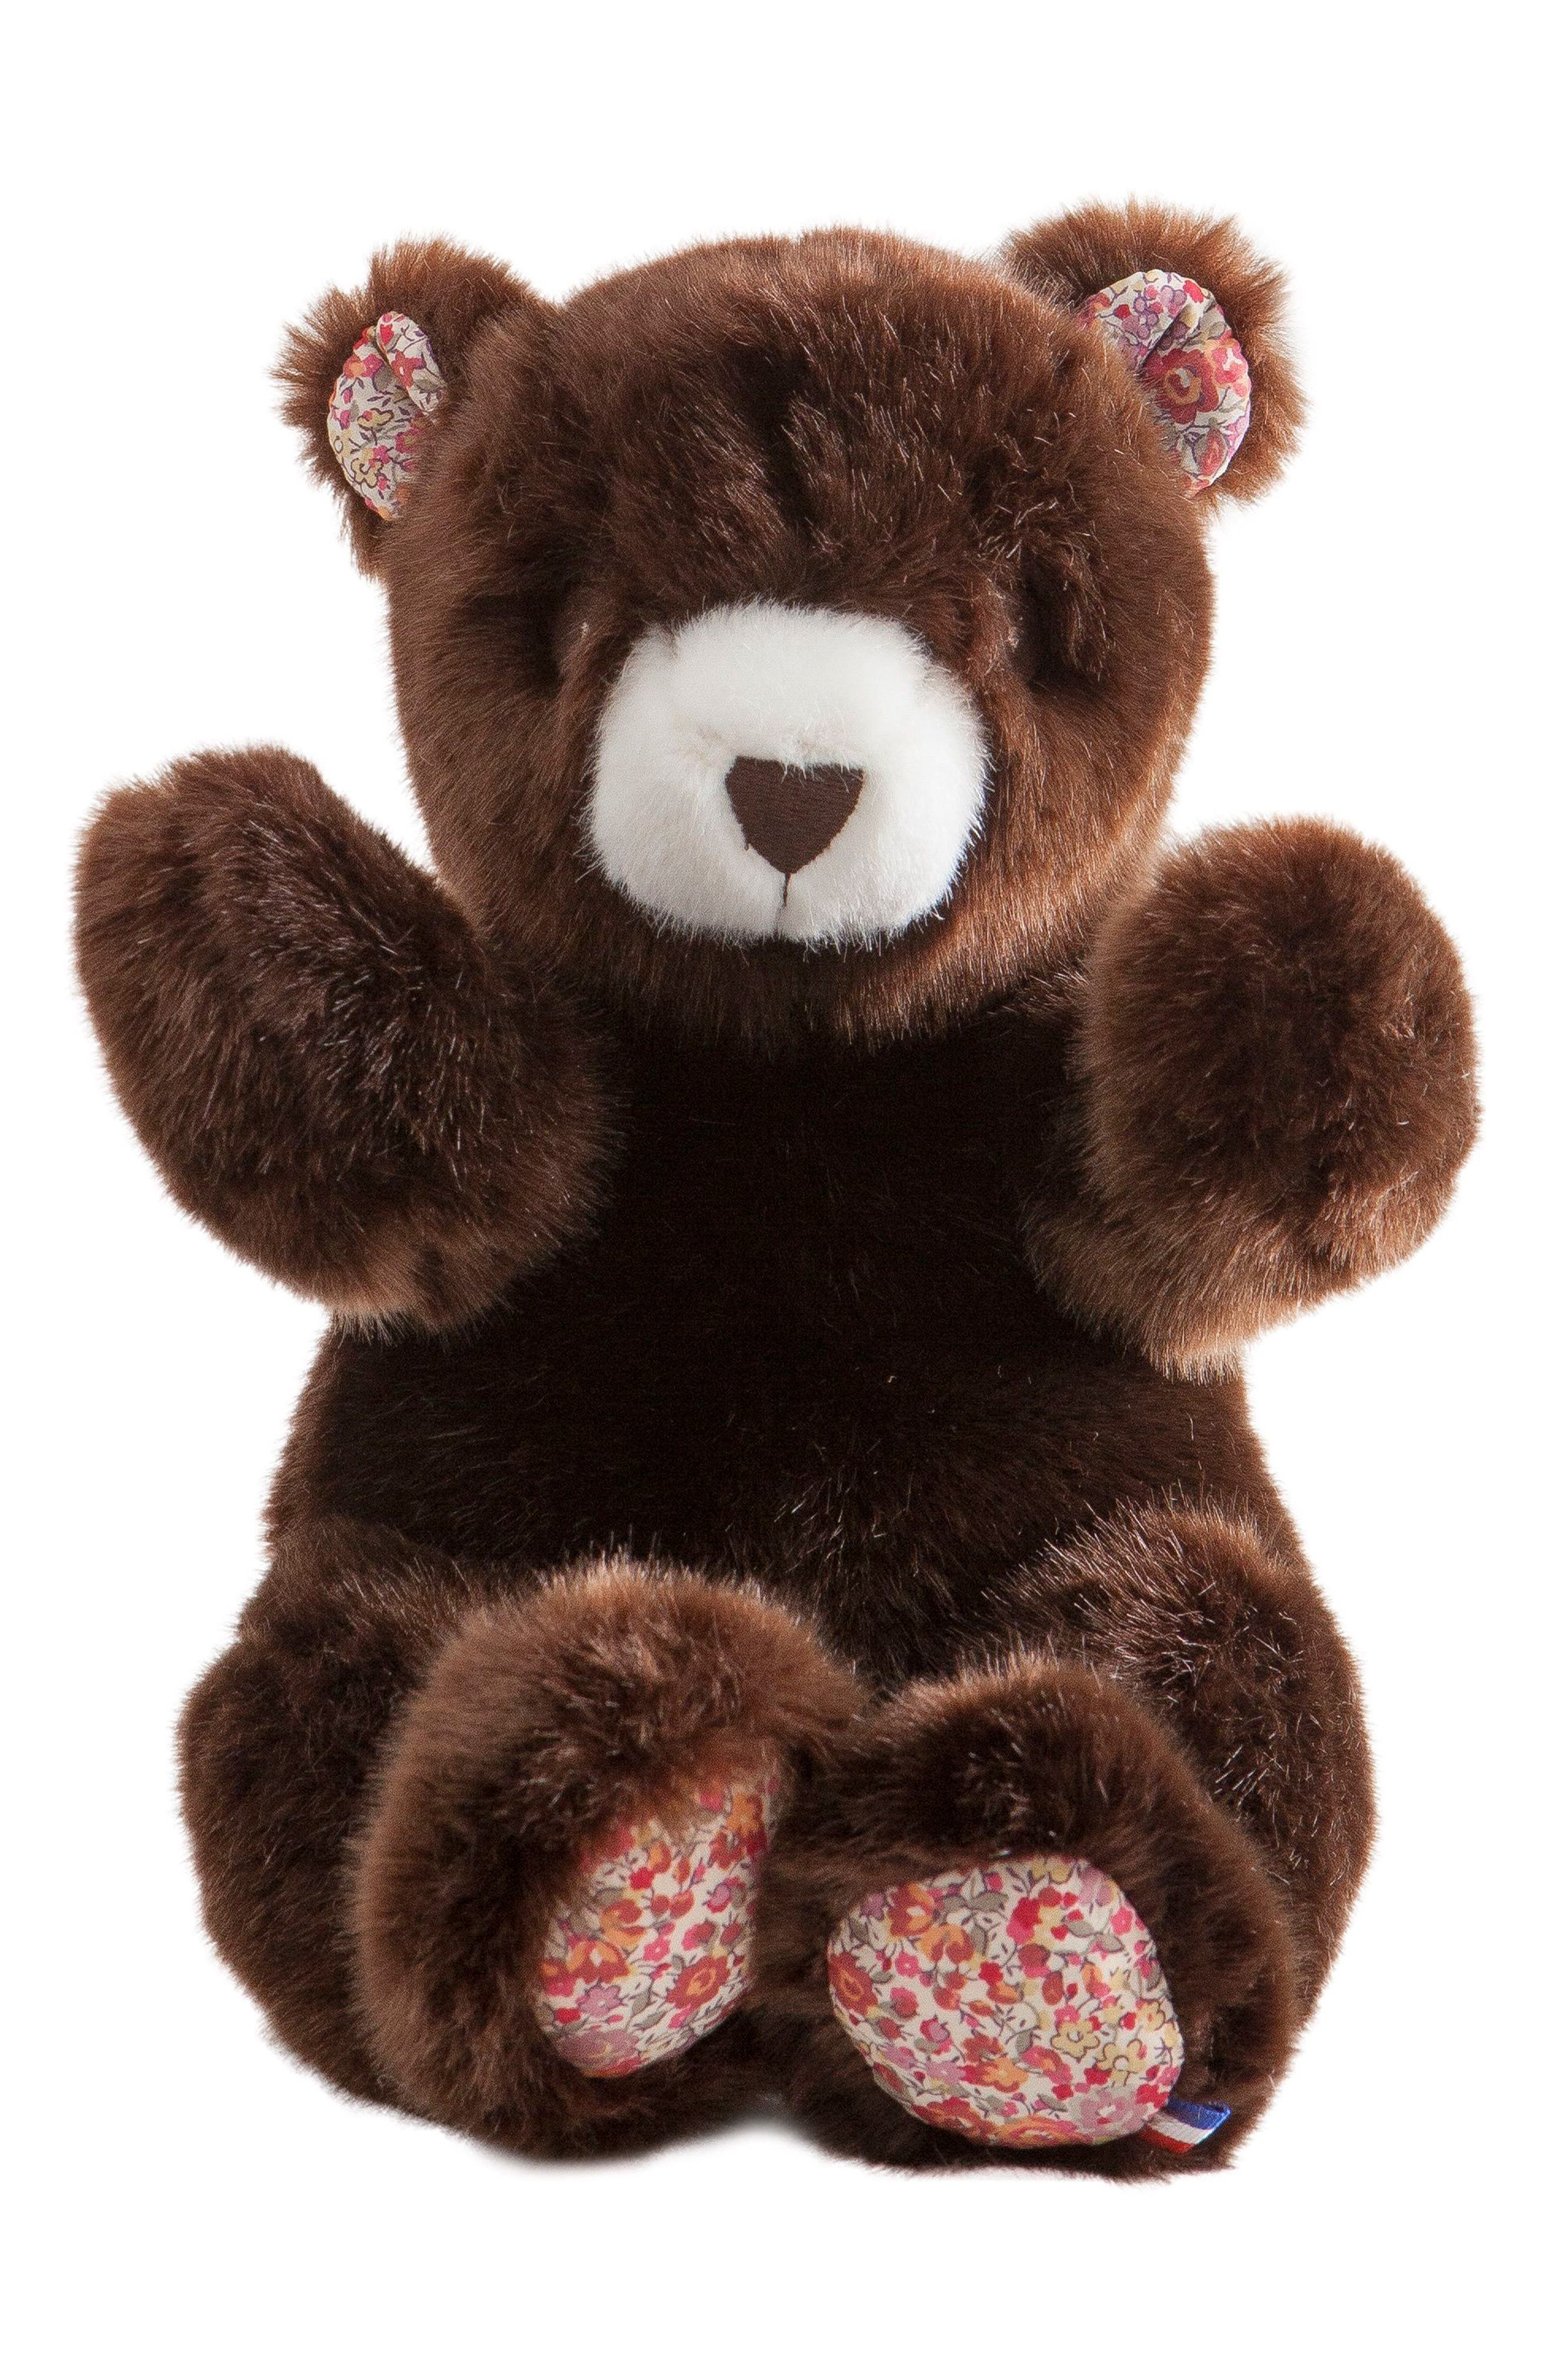 x Liberty of London Robert the Bear Stuffed Animal,                         Main,                         color, BROWN